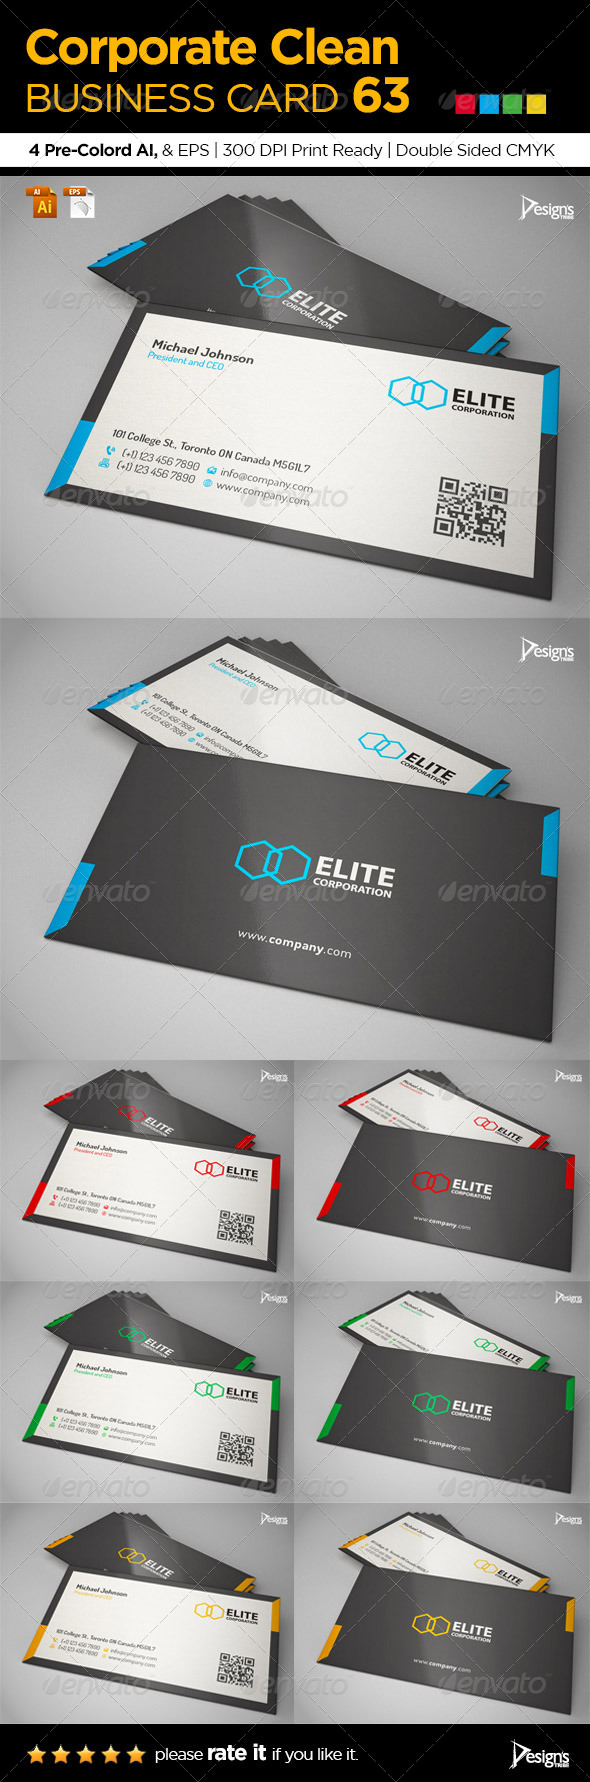 Corporate Clean Business Card 63 - Business Cards Print Templates